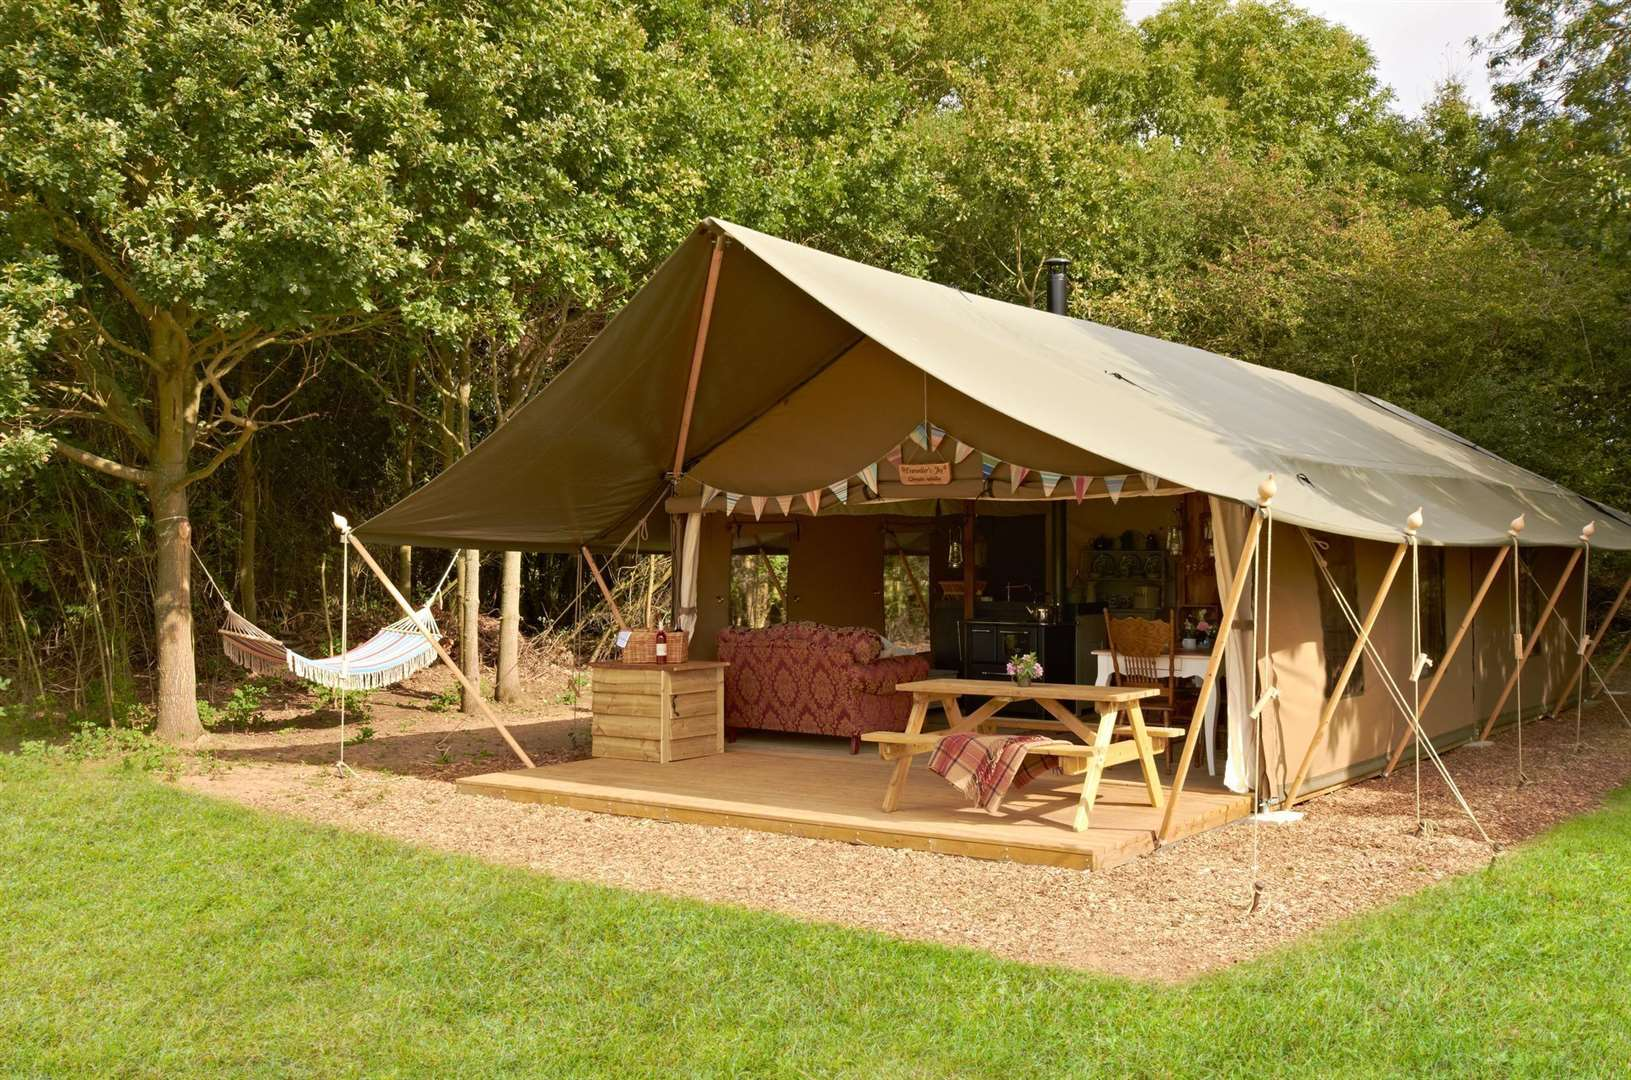 The Luxury Lodge Tents have everything you need for a perfect stay (42368917)